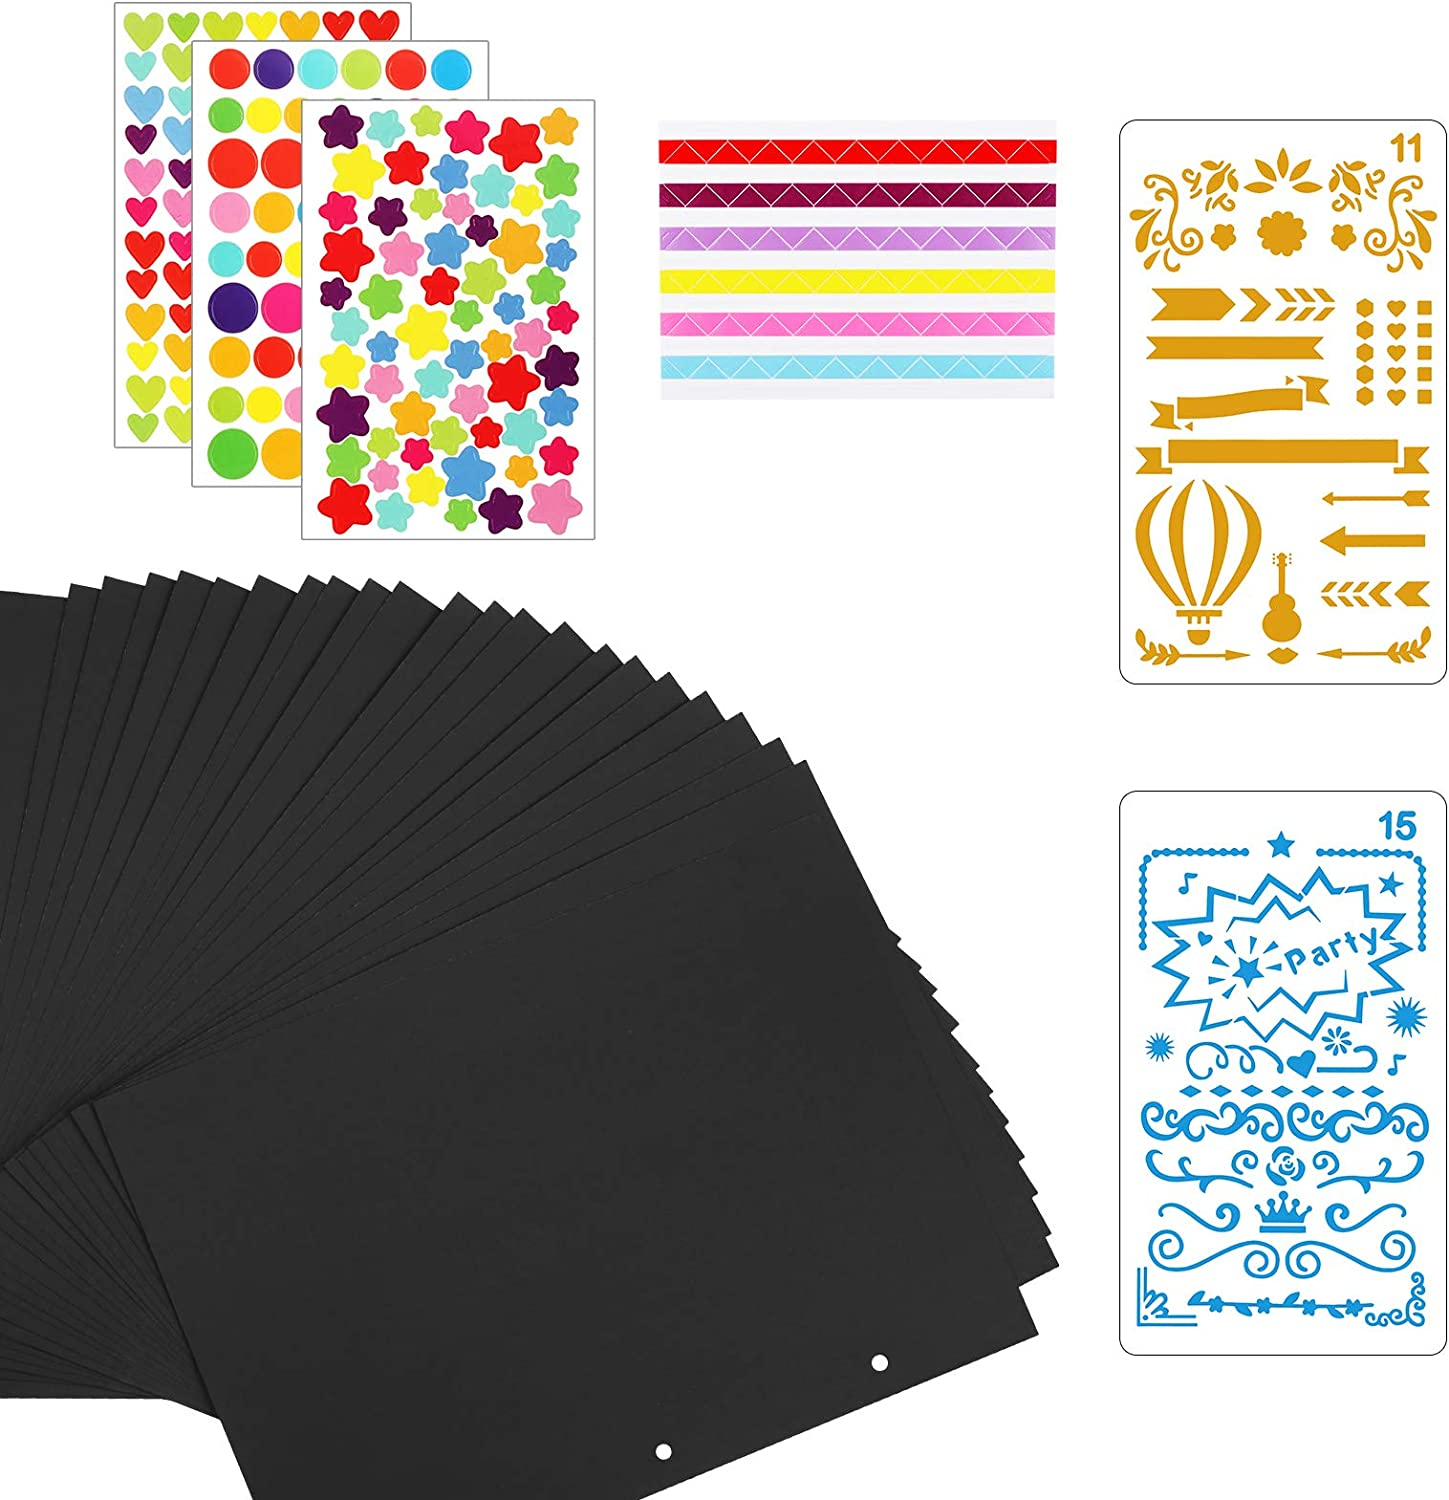 OPPRES 24 PCS Scrapbook Black Pages Paper for DIY Photo Album Scrapbooking Photo Pages with 3 Color Tag for Girl DIY Craft Couple Gift Album Birthday Party